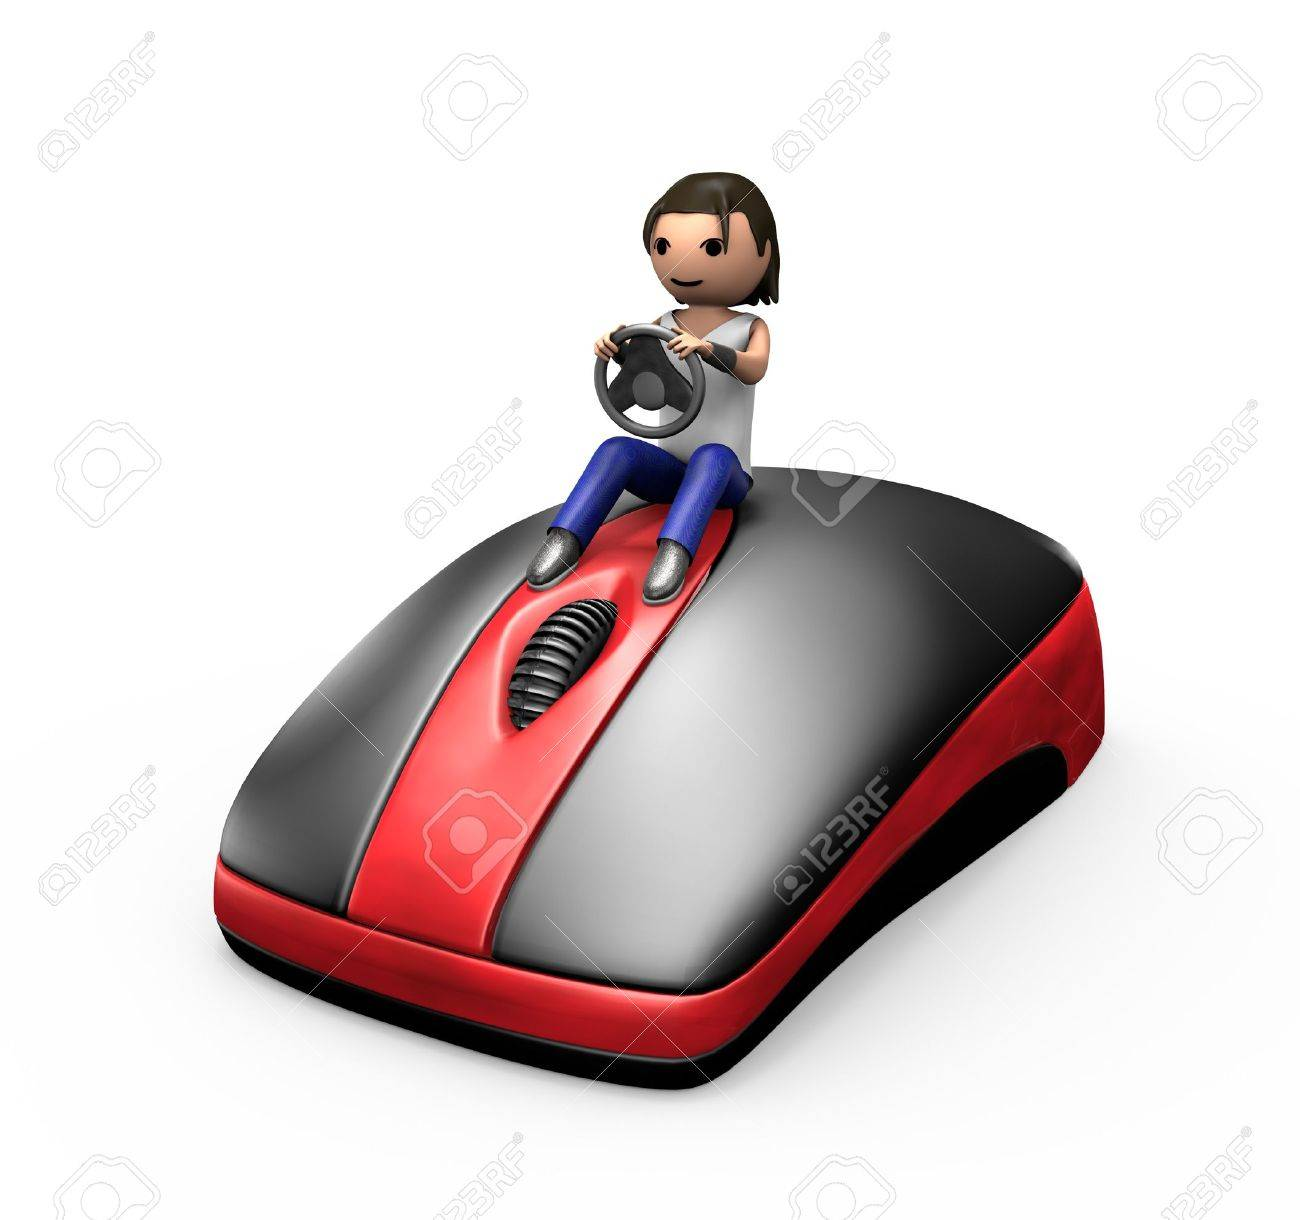 3d Young Male Driving a PC Mouse like a Car - 7841843